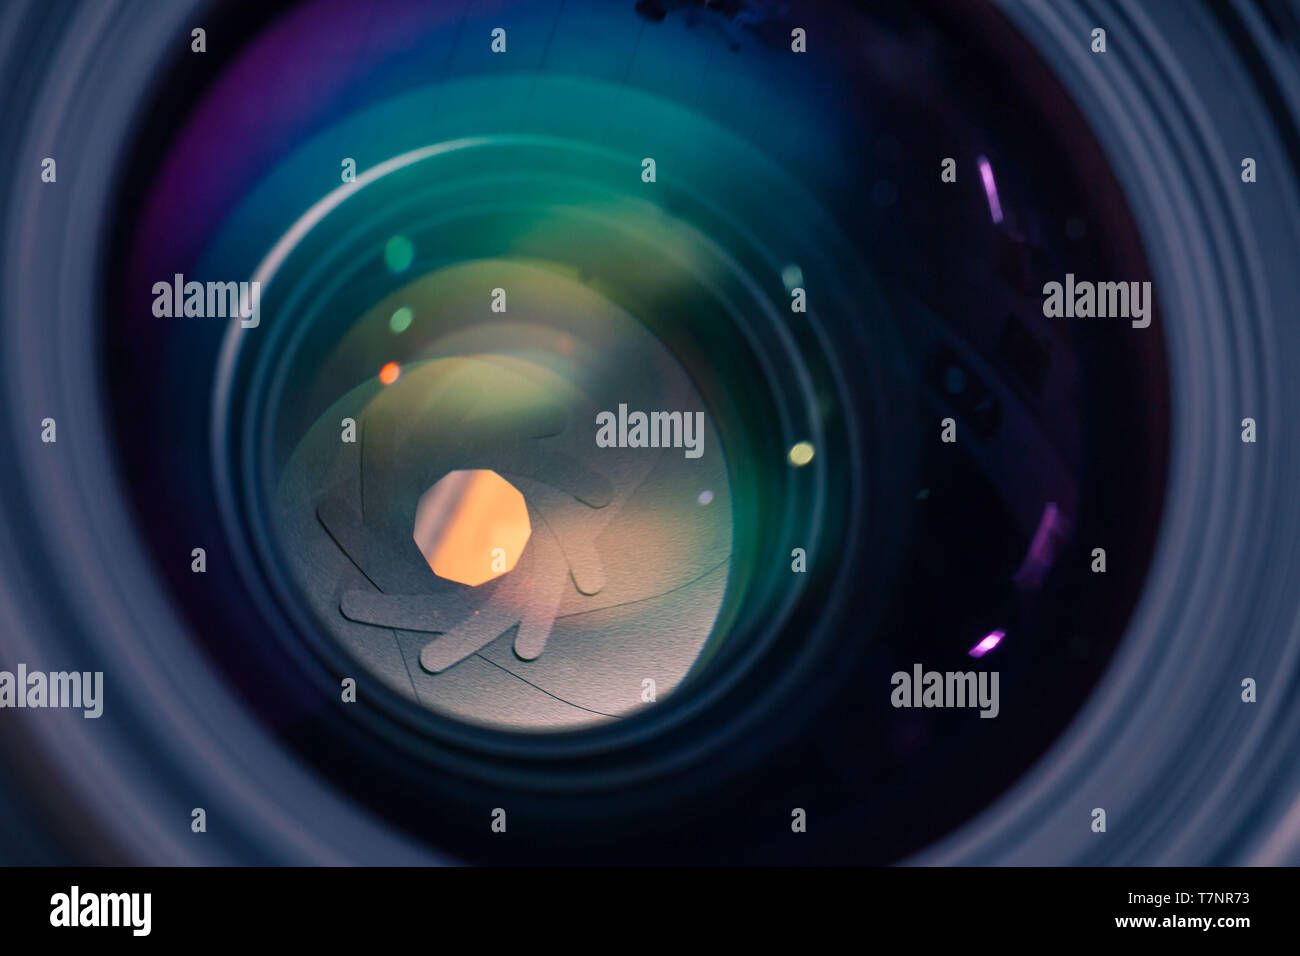 Detail picture of camera lens anti reflective coating, casting green and purple reflections, detail of aperture inside of a lens - Stock Image